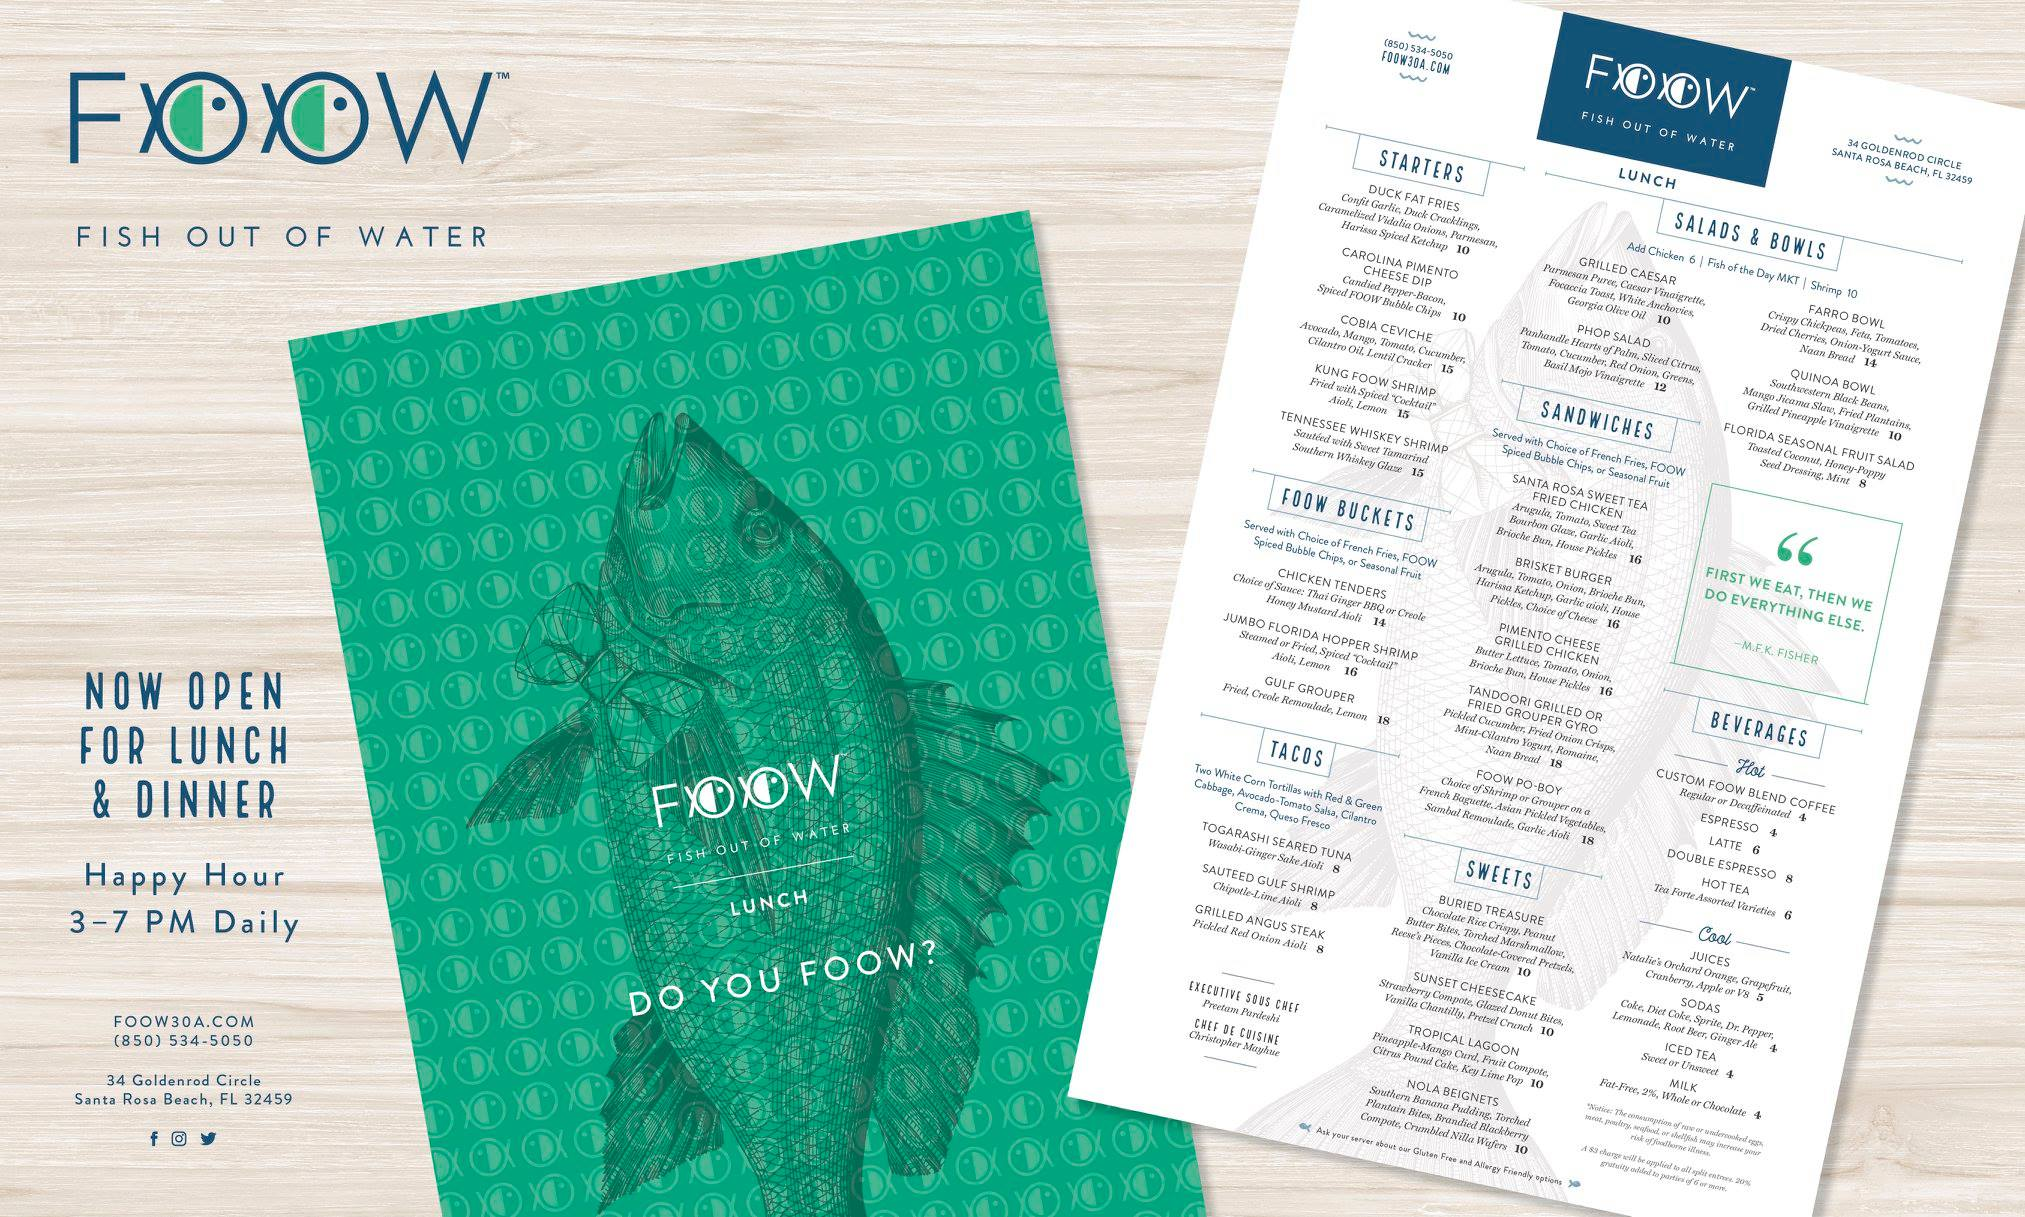 FOOW resturant menu design print ad by The Idea Boutique